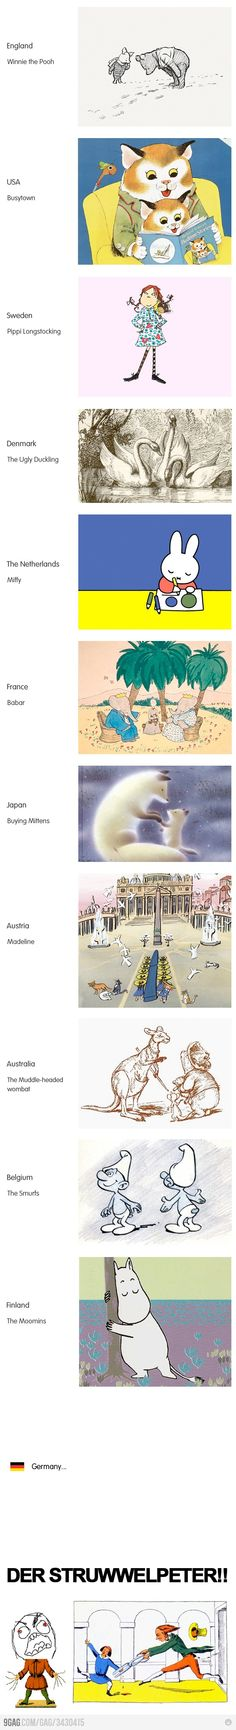 Famous children's books and their countries of origin. I remember reading a lot of Richard Scary and Babar as a child. :)